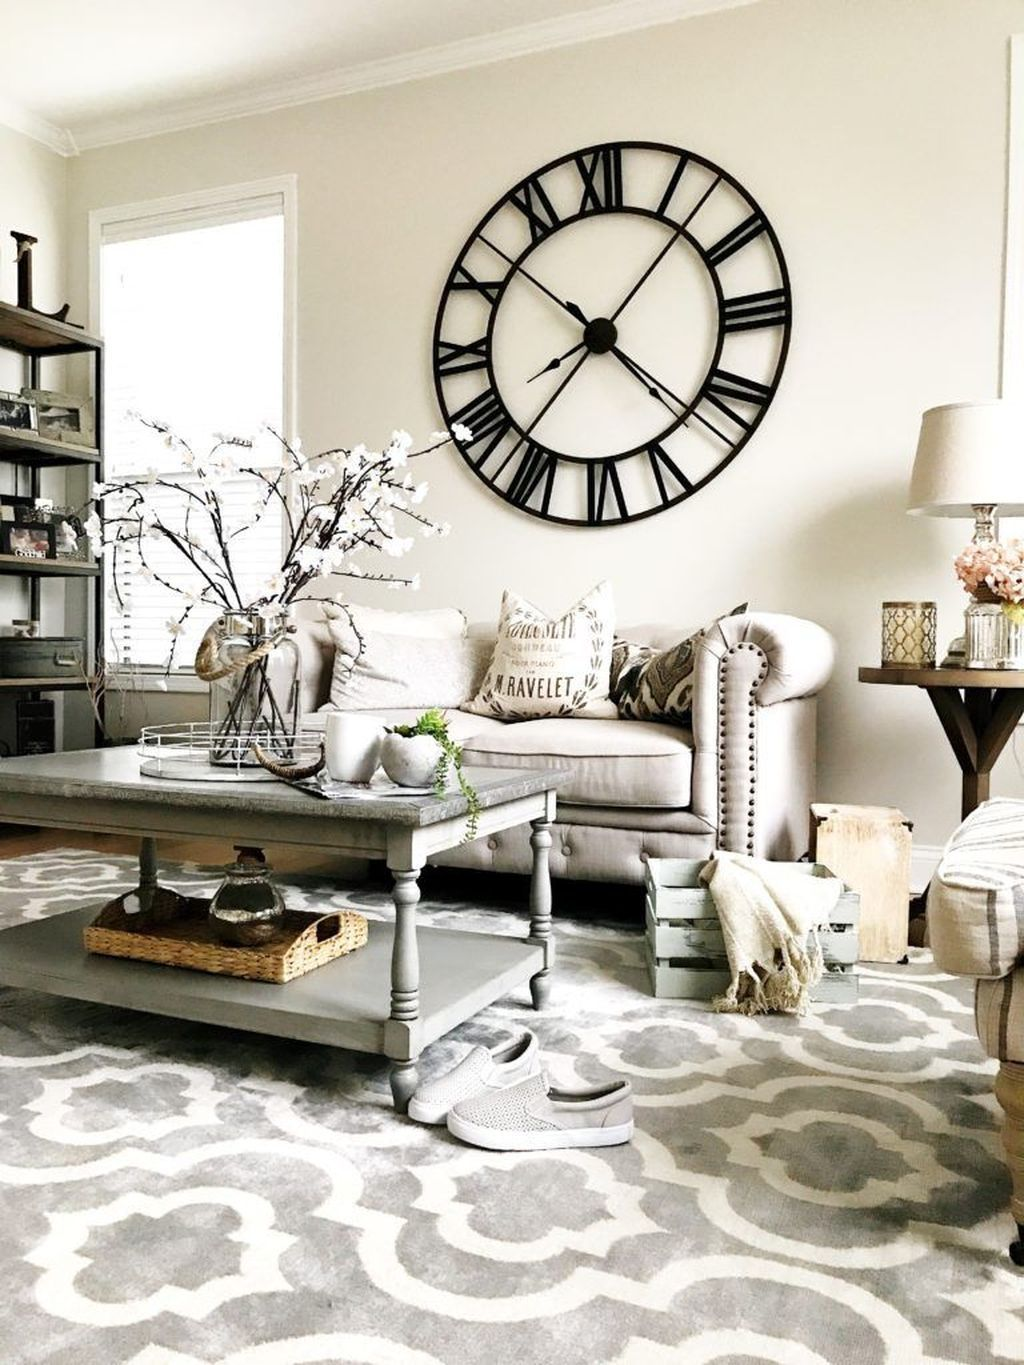 Create A Timeline On Your Living Room Wall